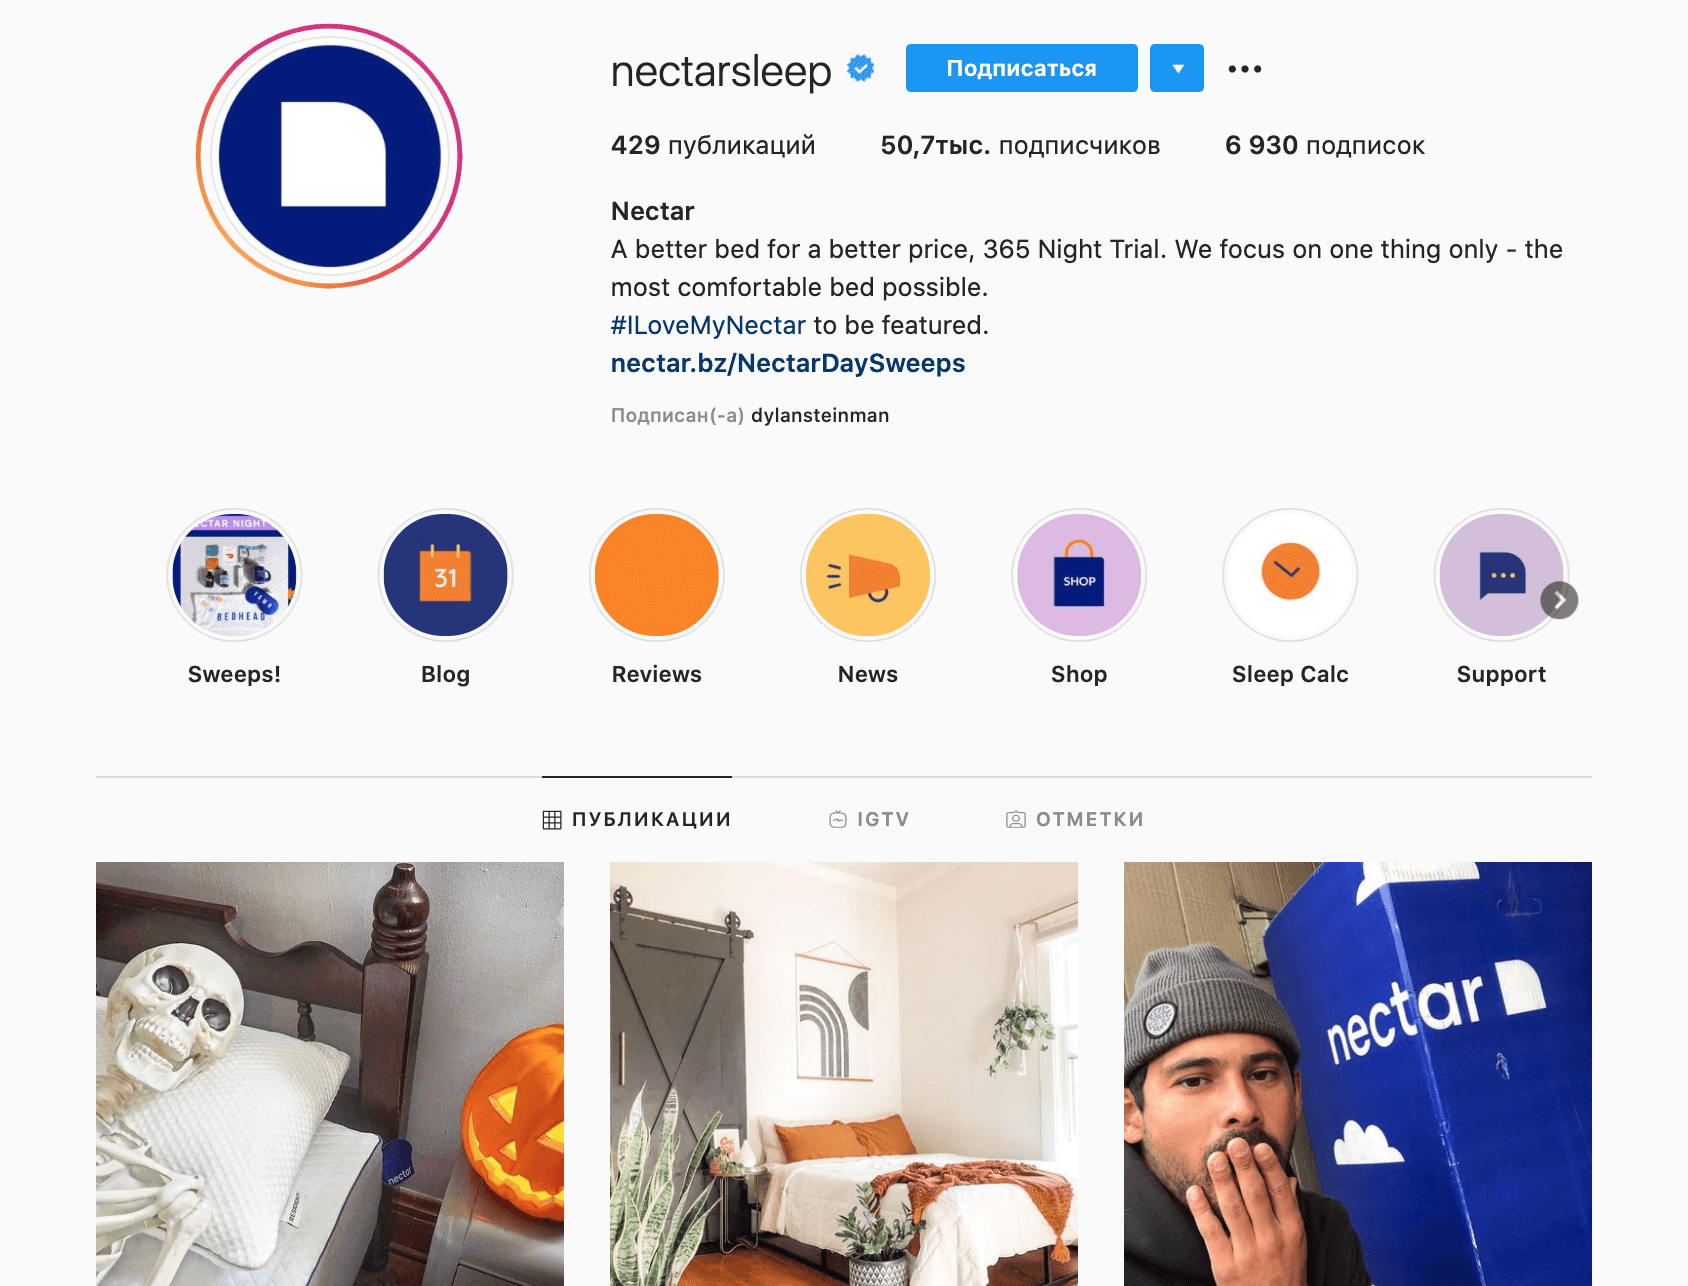 An option on how to arrange relevant Instagram Stories using @nectarsleep as an example